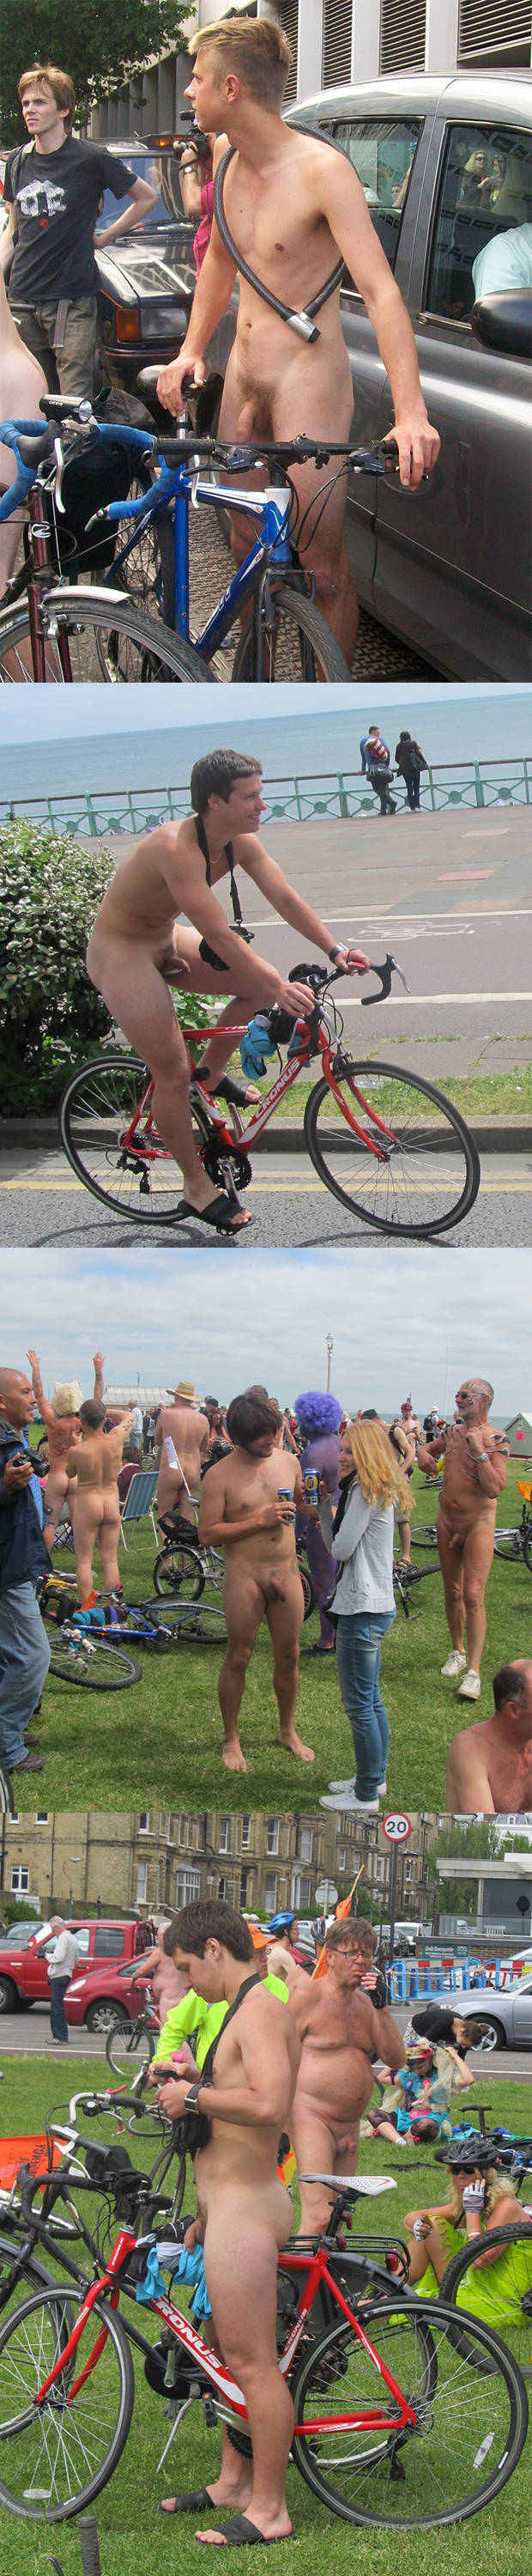 outdoor naked wnbr guys